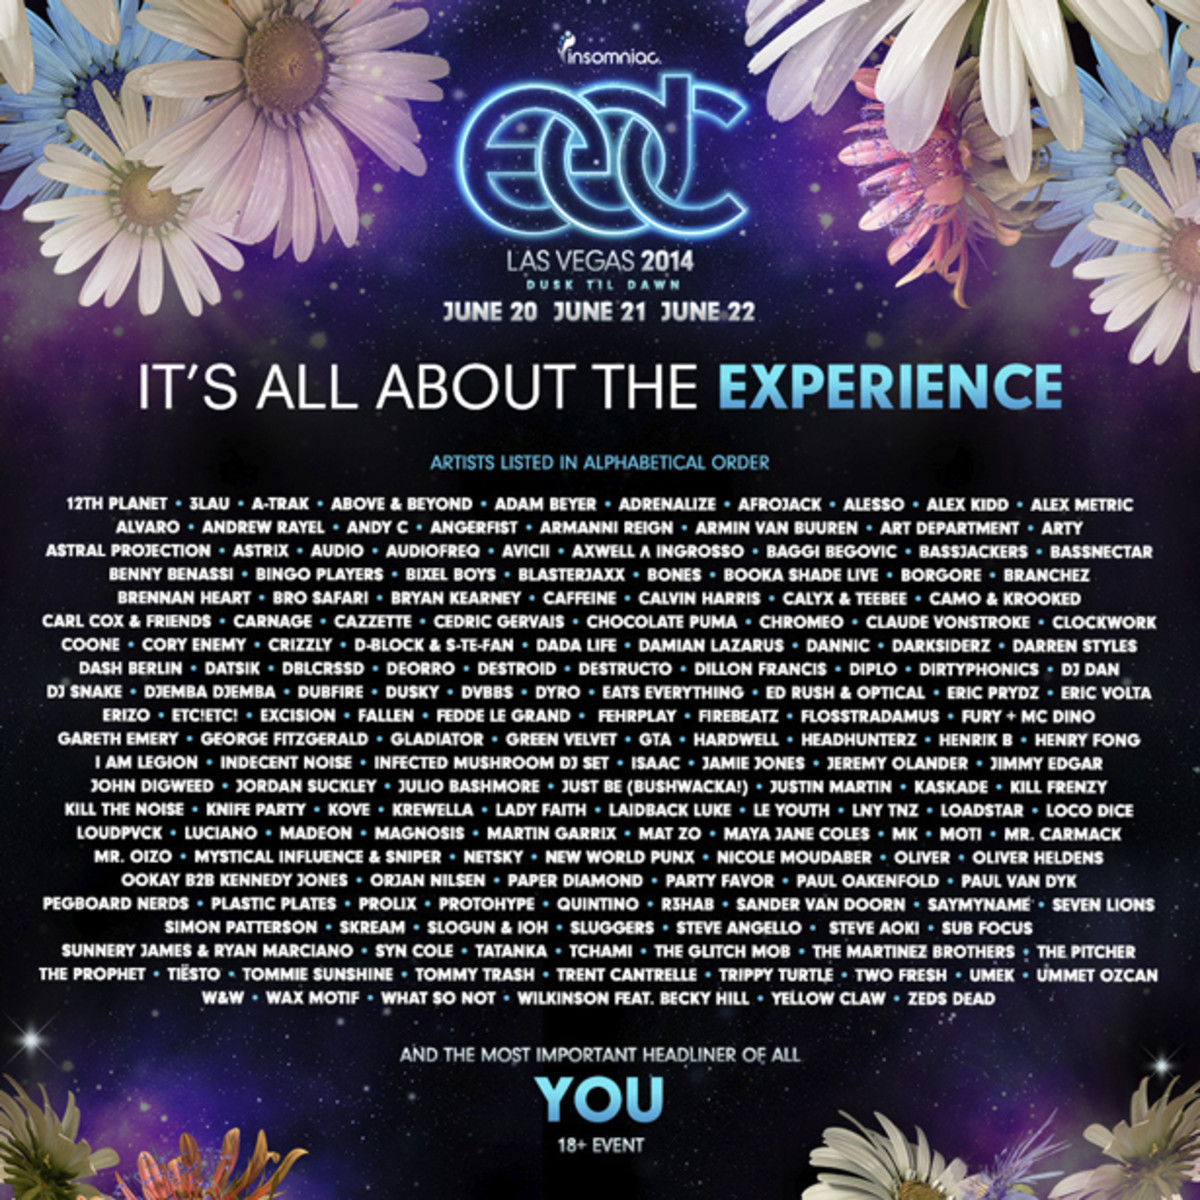 EDC Las Vegas 2014 Full Lineup Announced